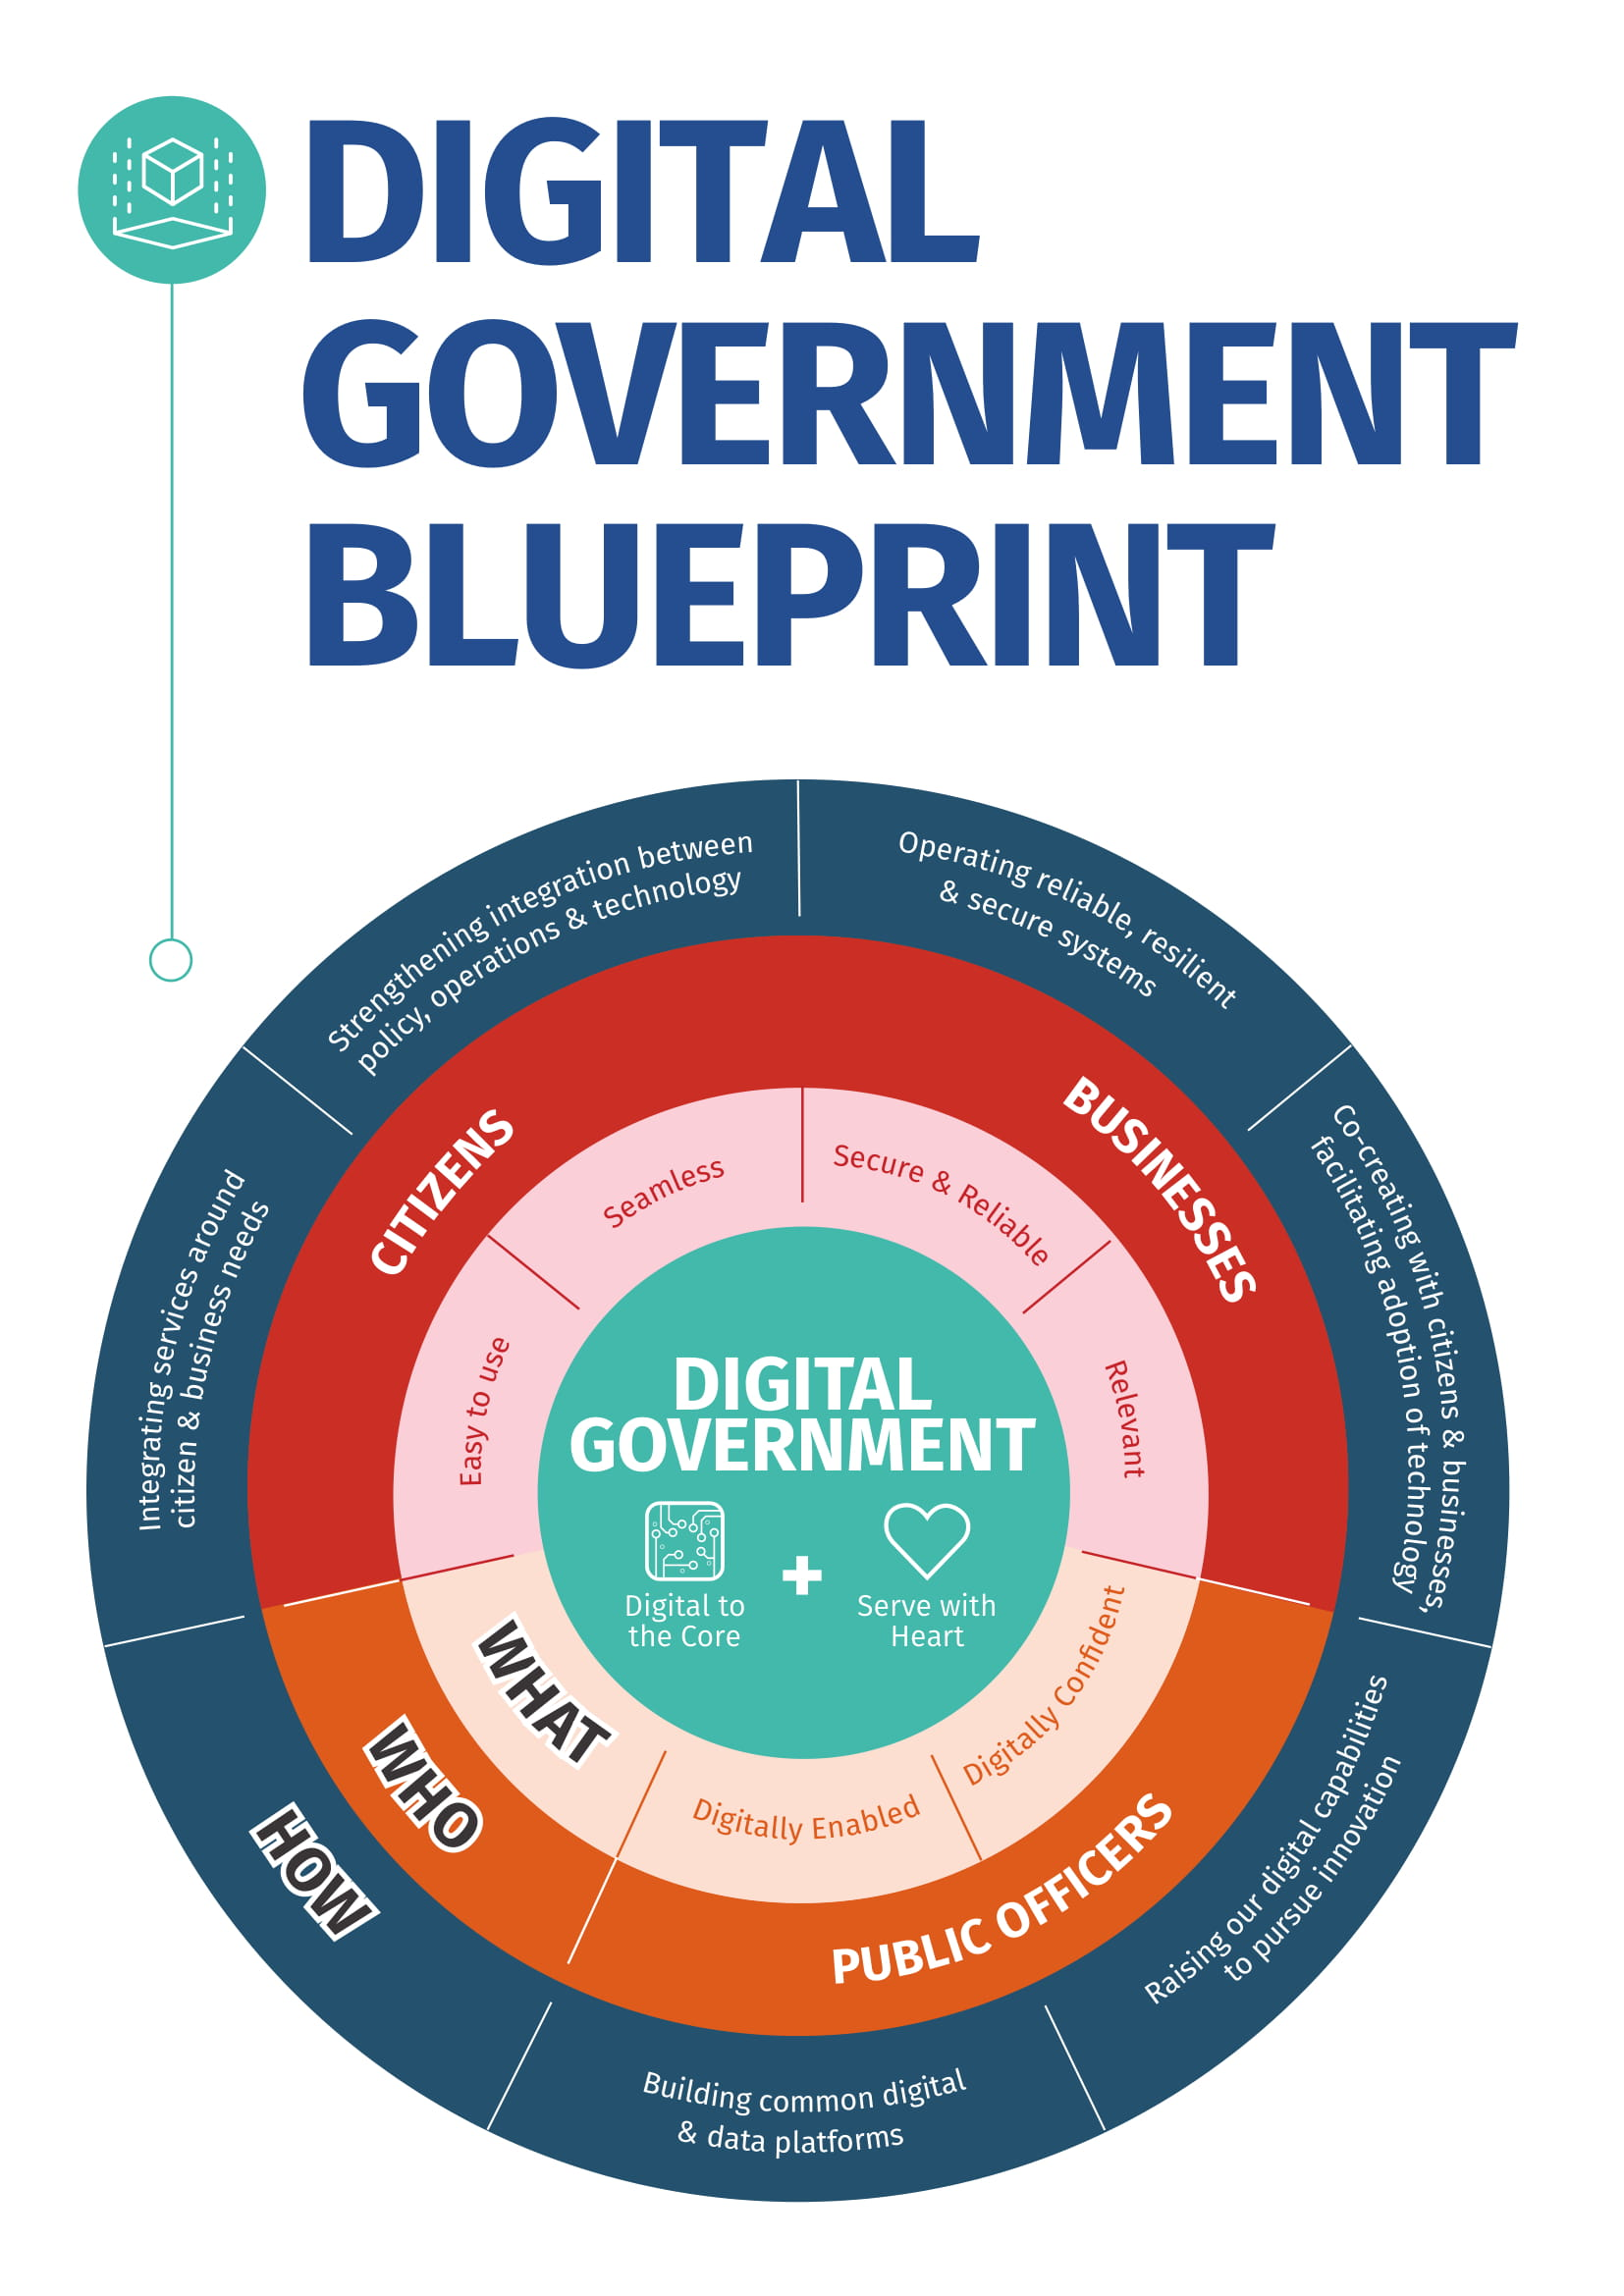 Image of Digital Government Blueprint